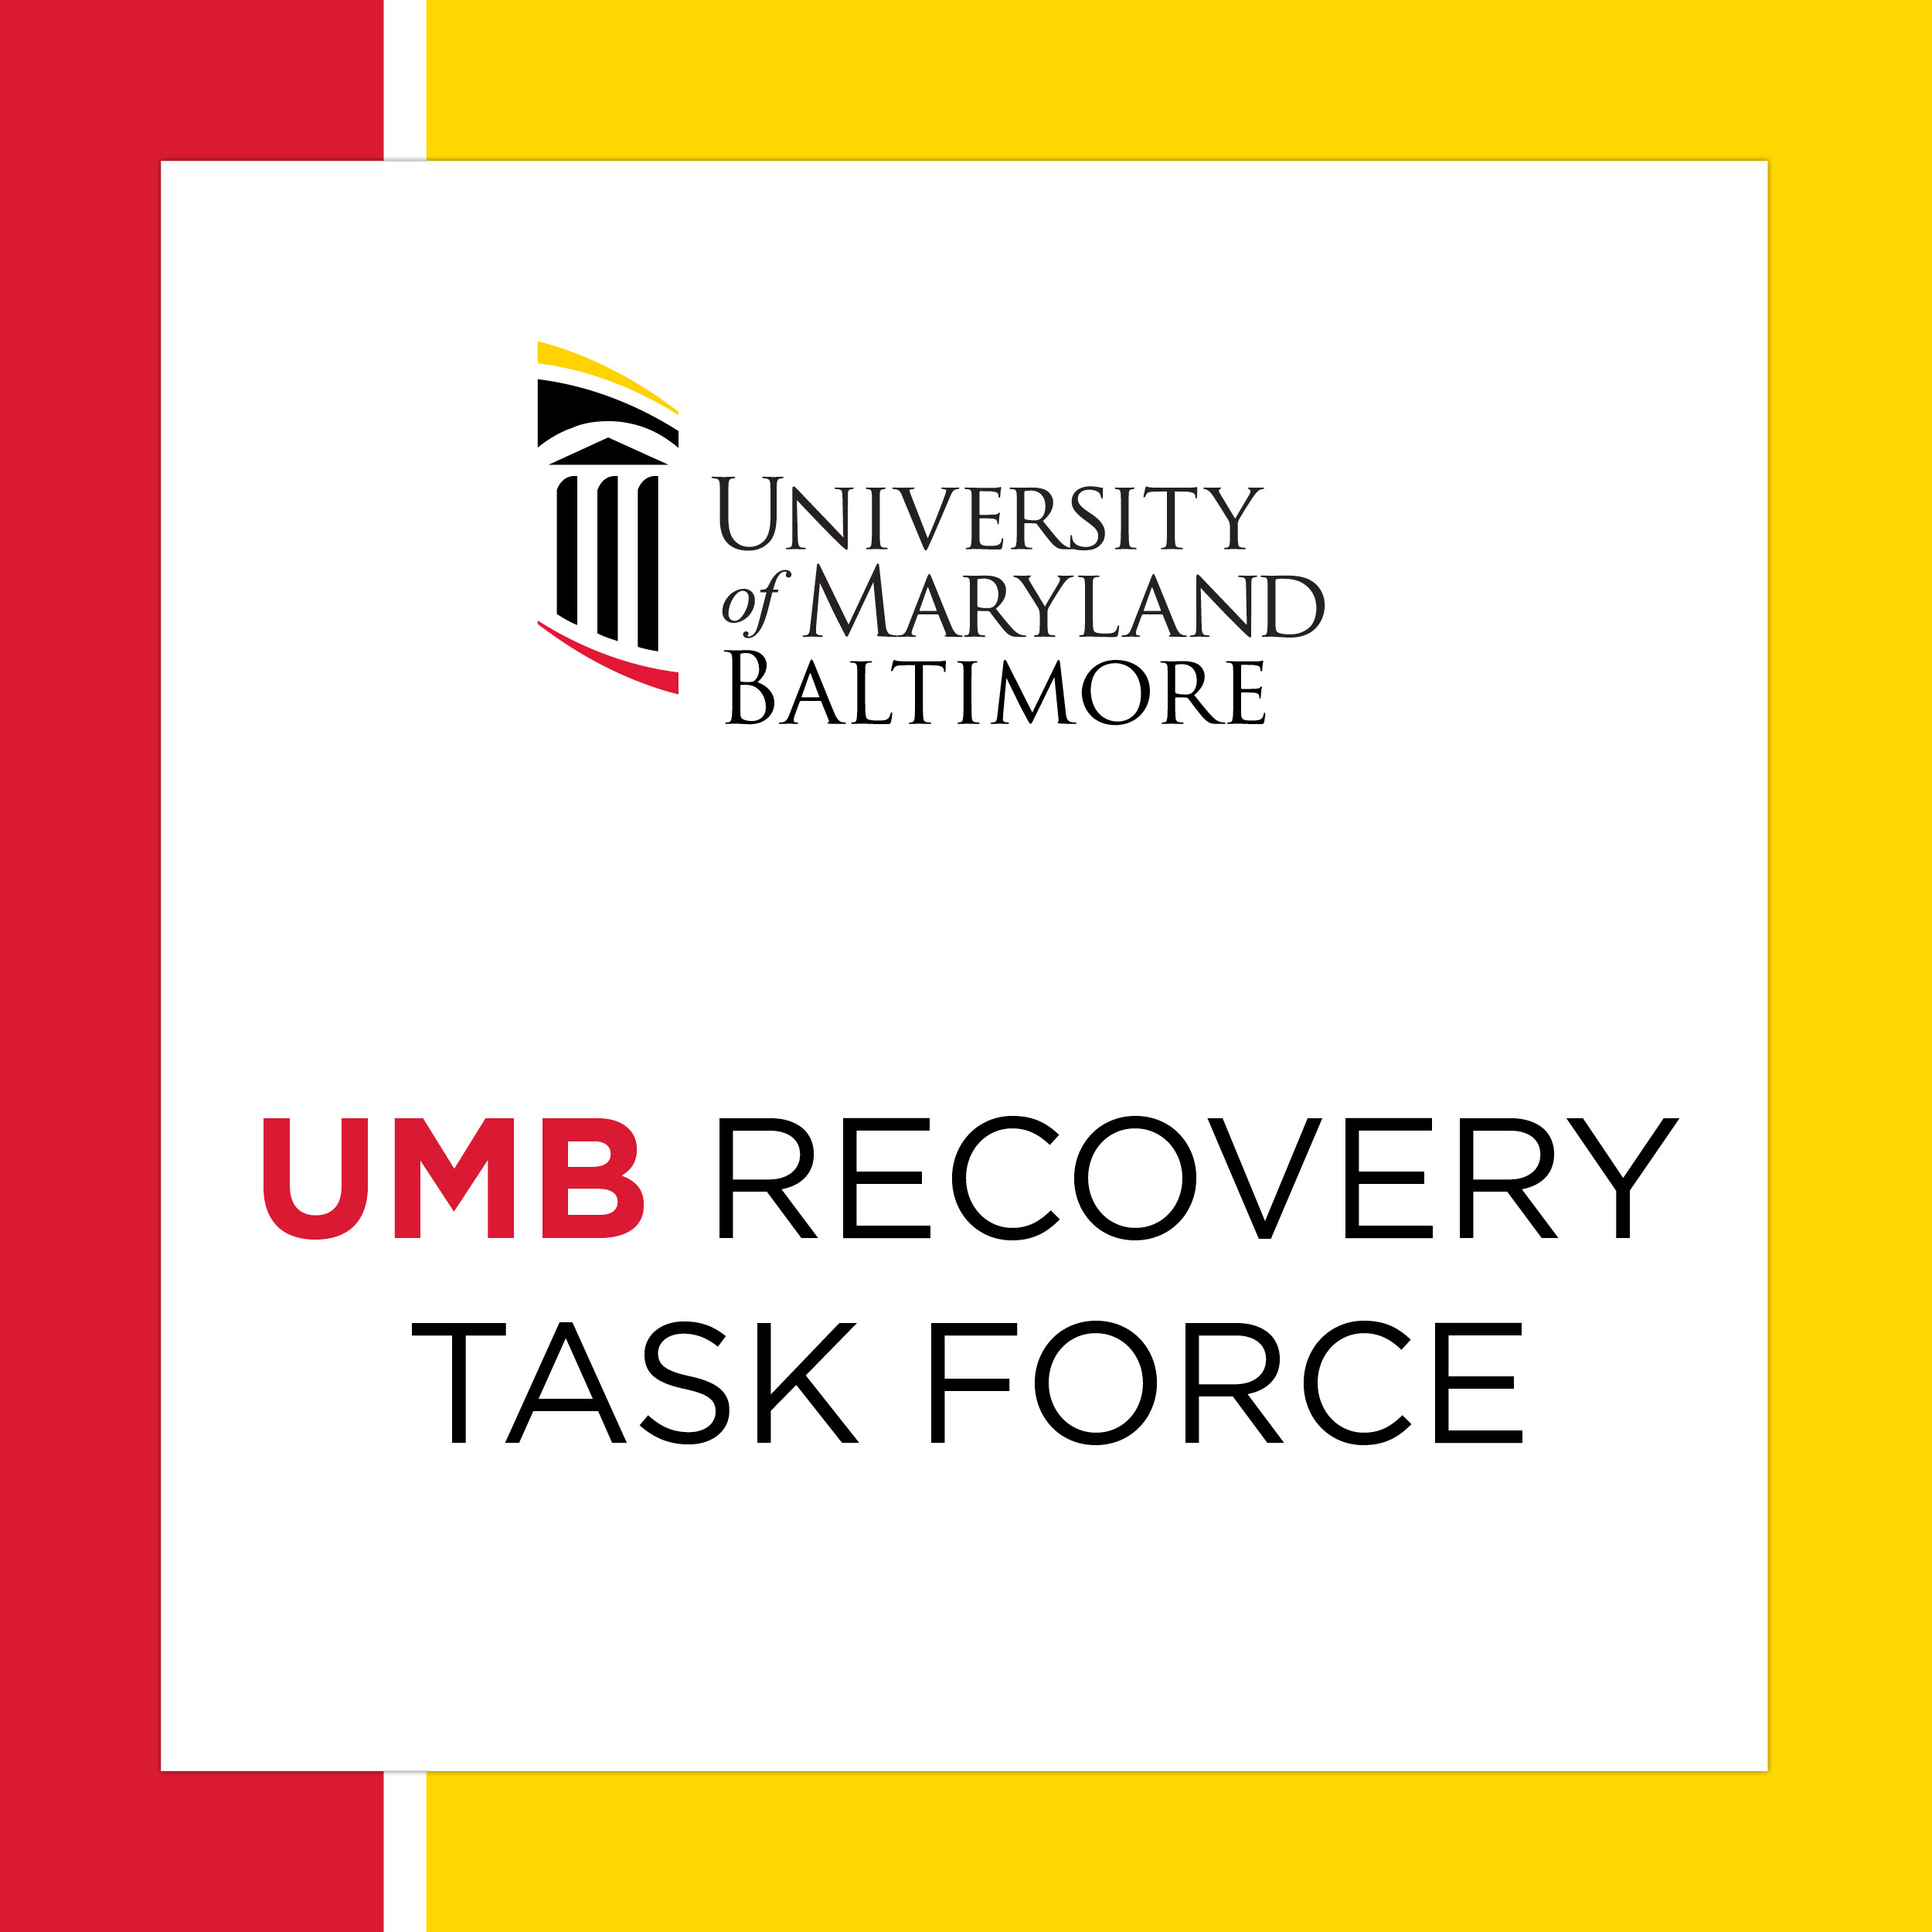 Recovery Task Force